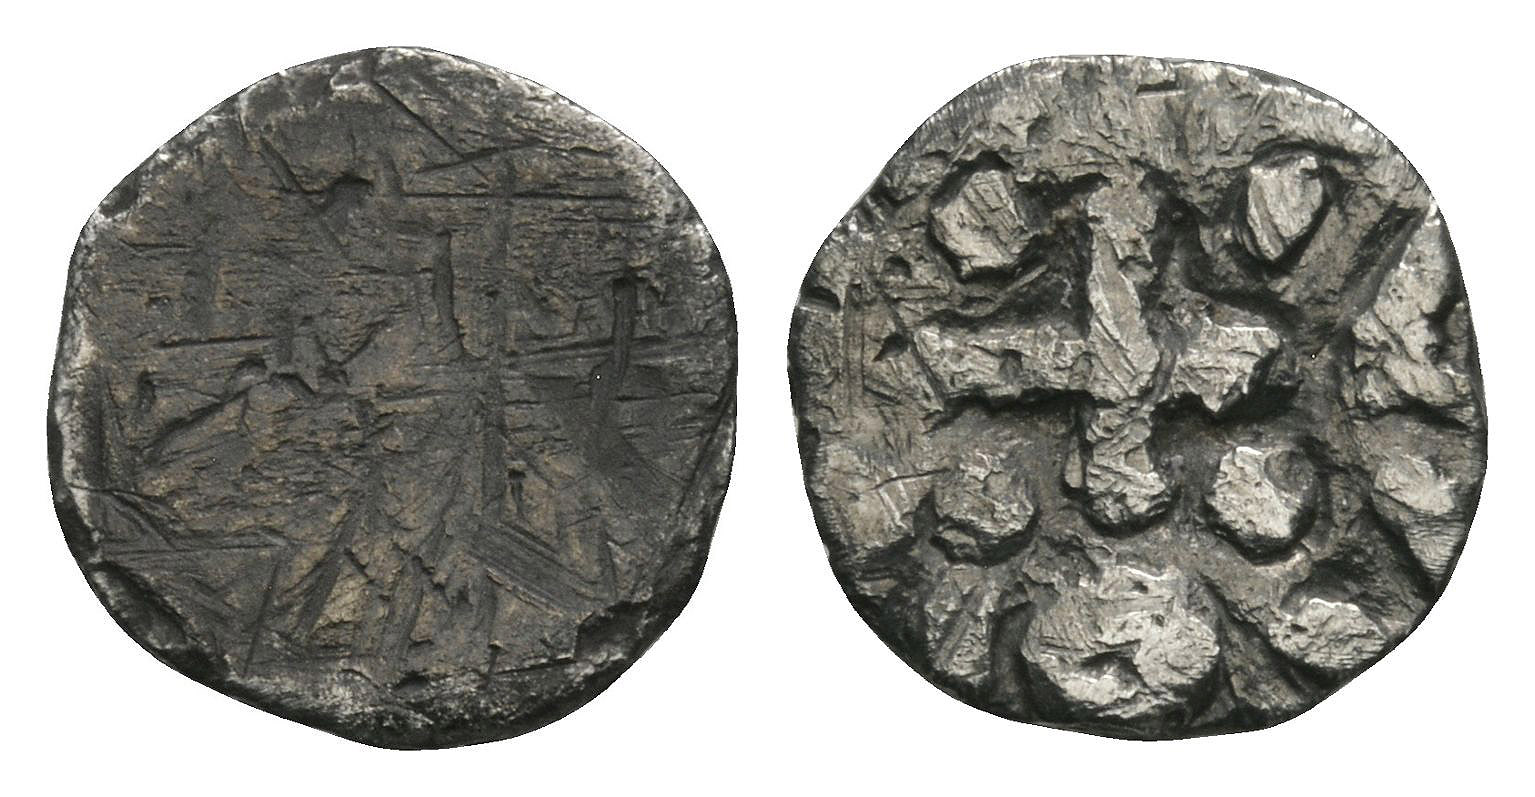 Anglo-Saxon Coins - Continental Issues - Series D Type 2c - Obverse Erased Portrait Sceatta